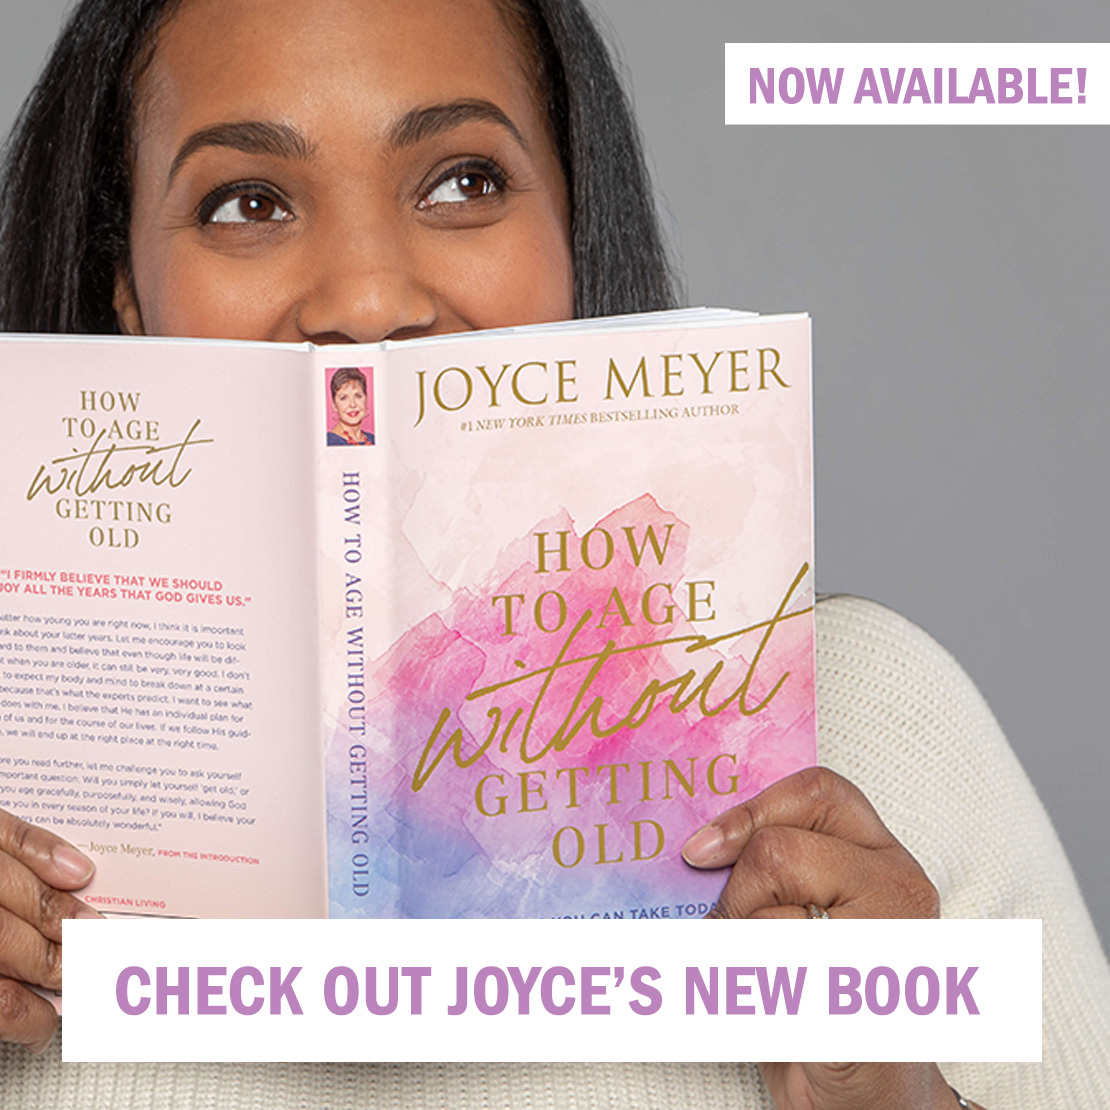 Get Joyce's book - How to Age Without Getting Old